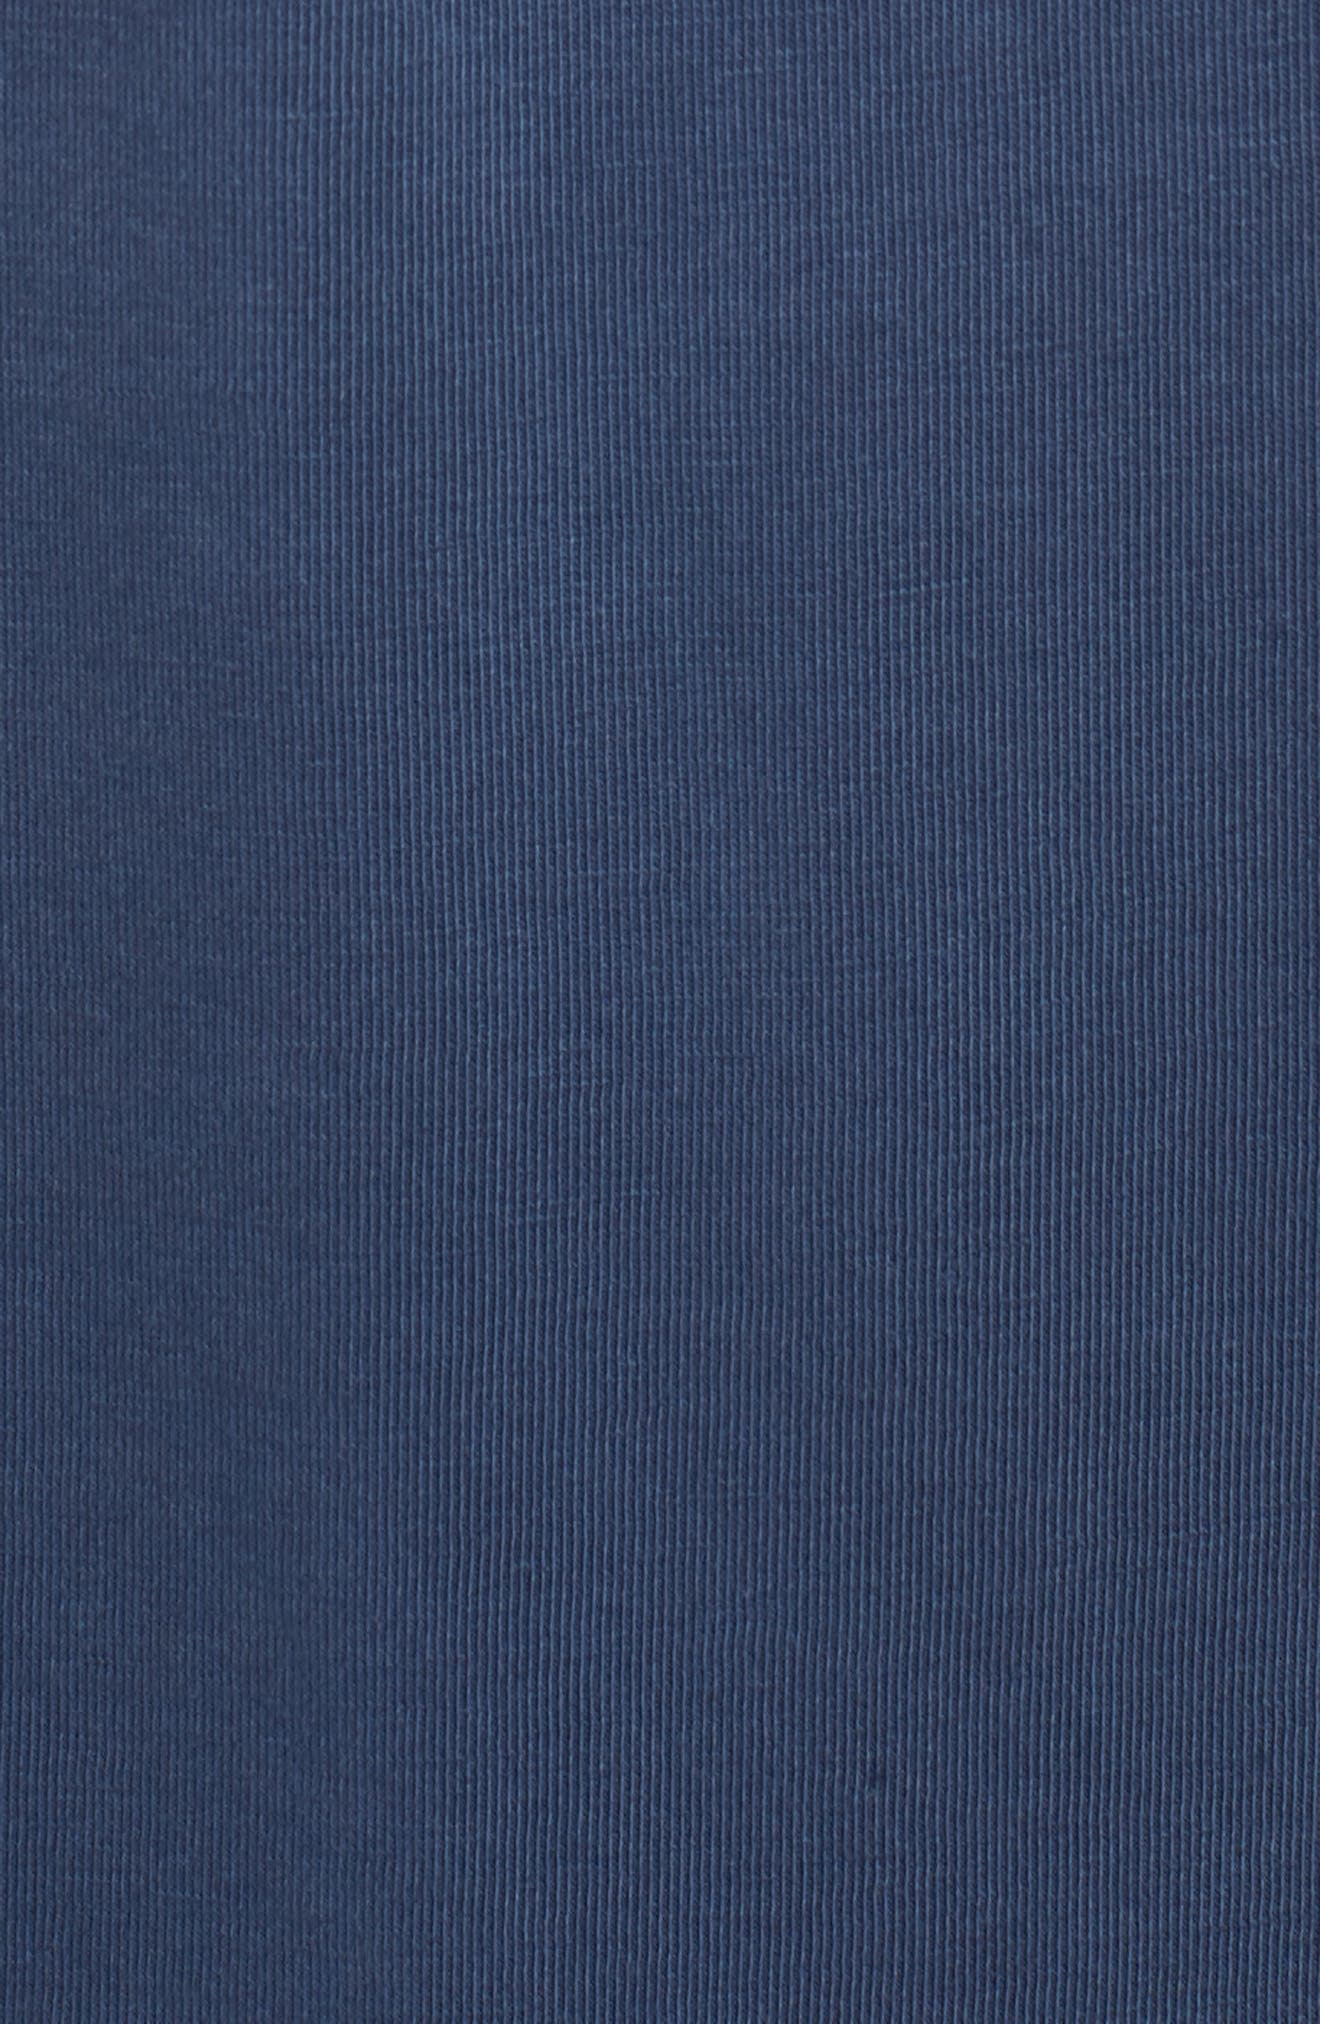 Anders Slim Fit Pocket T-Shirt,                             Alternate thumbnail 5, color,                             Sun Faded Blue Plume